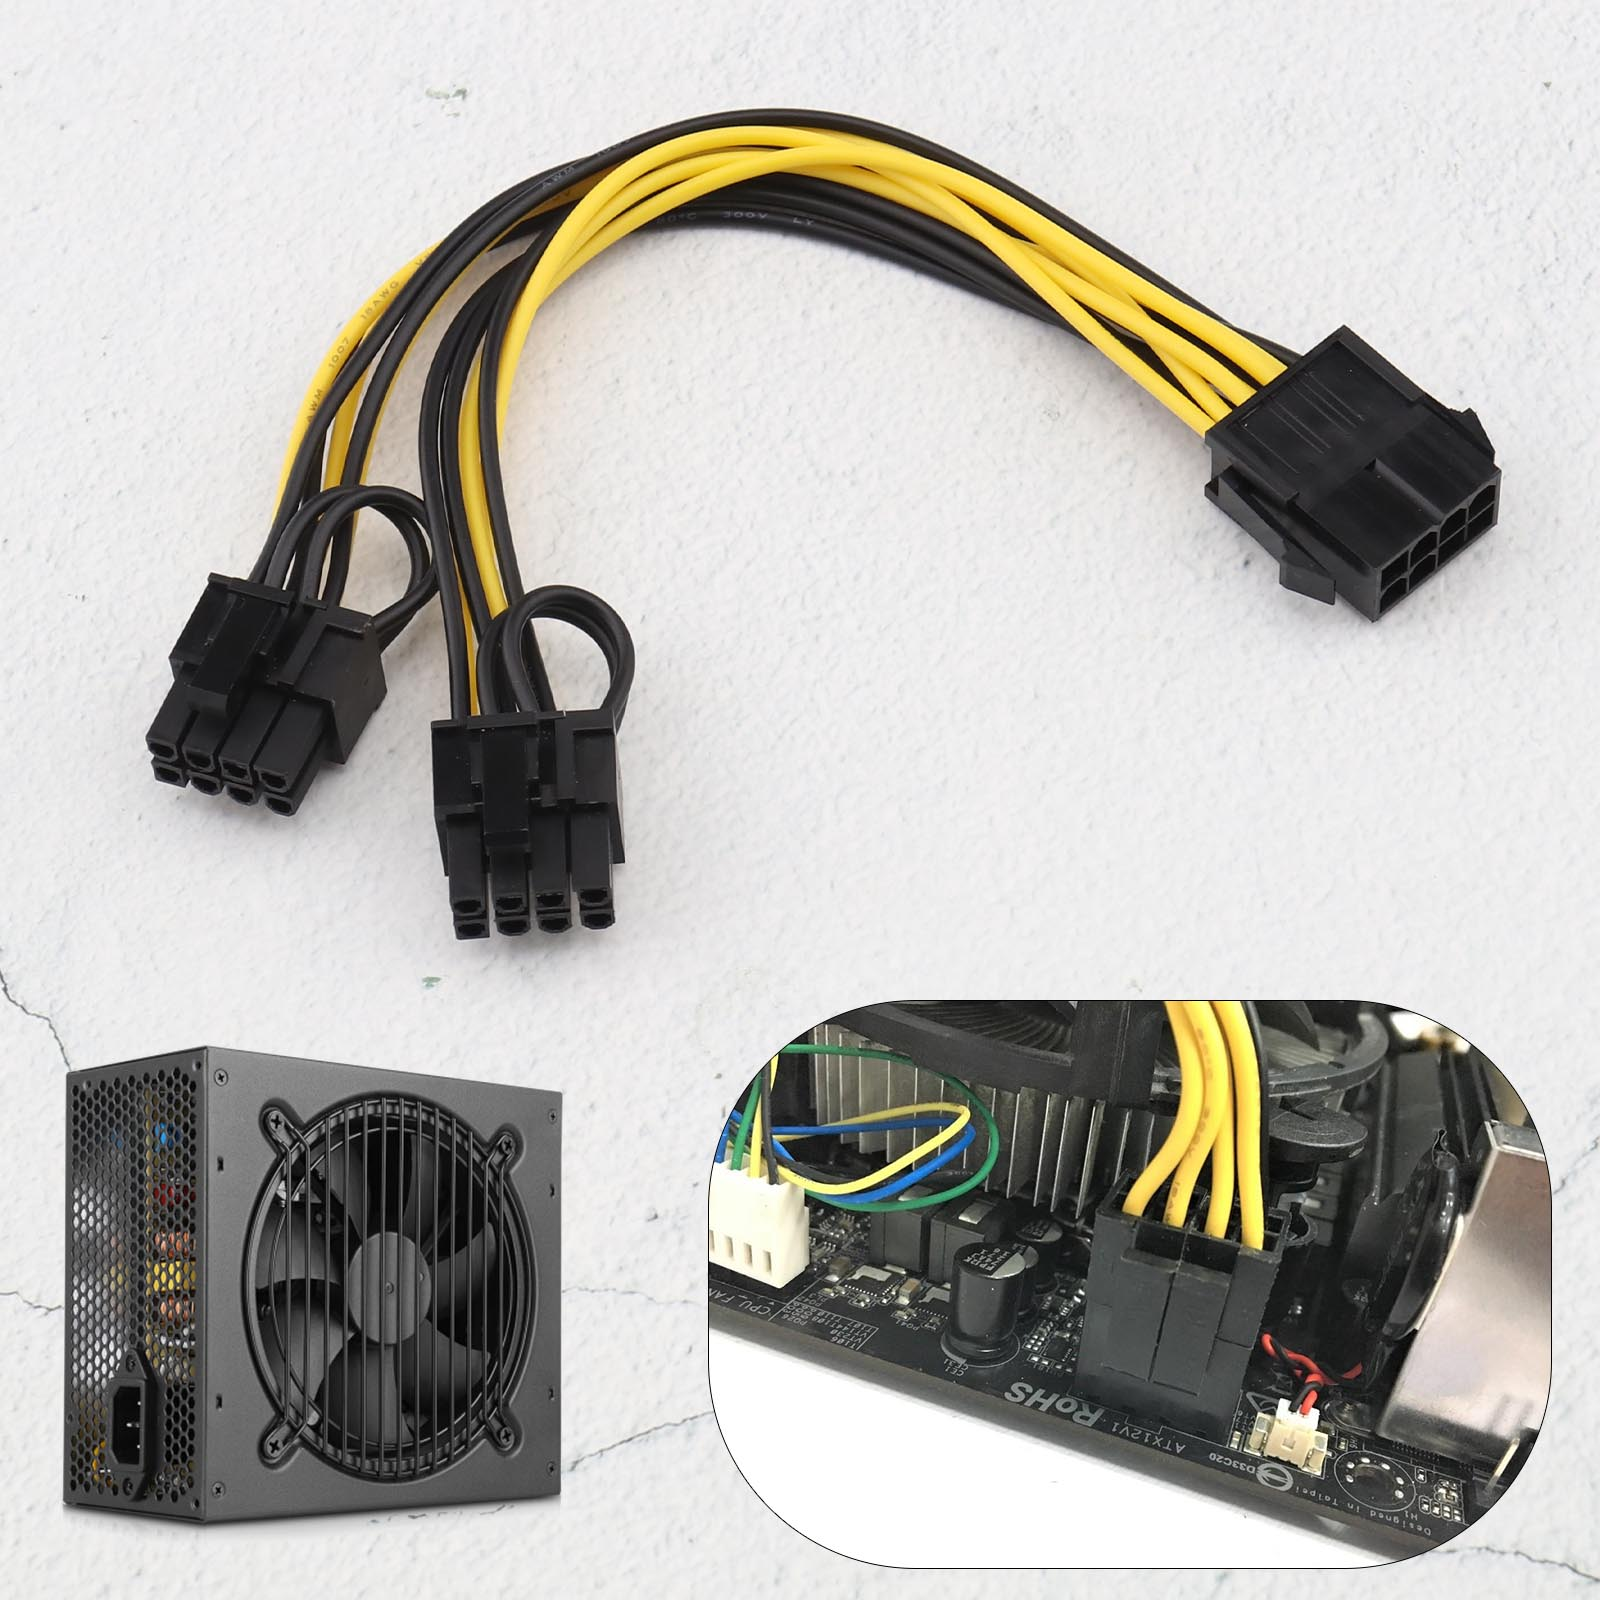 Details about Dual 6 Pin Female To 8 Pin Male PCIE VGA Power Cable for  NVIDIA ATI RADEON